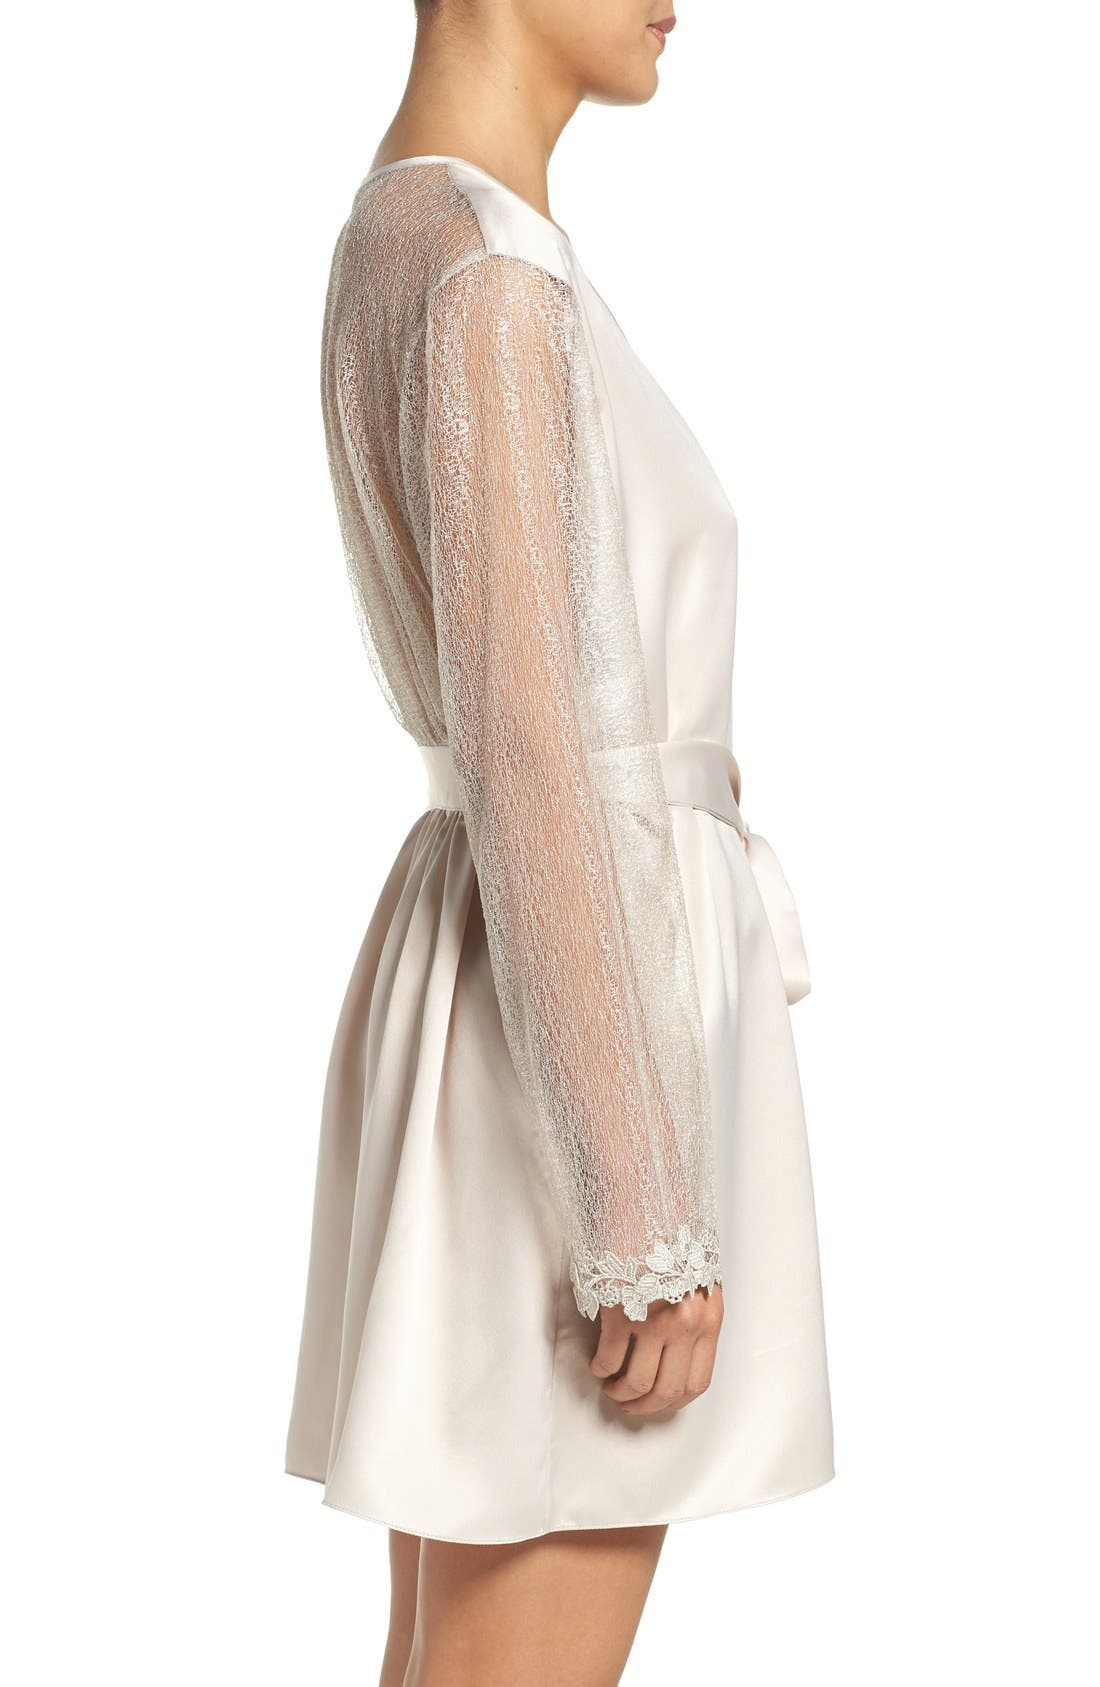 FLORA NIKROOZ, Showstopper Robe, Alternate thumbnail 3, color, CHAMPAGNE